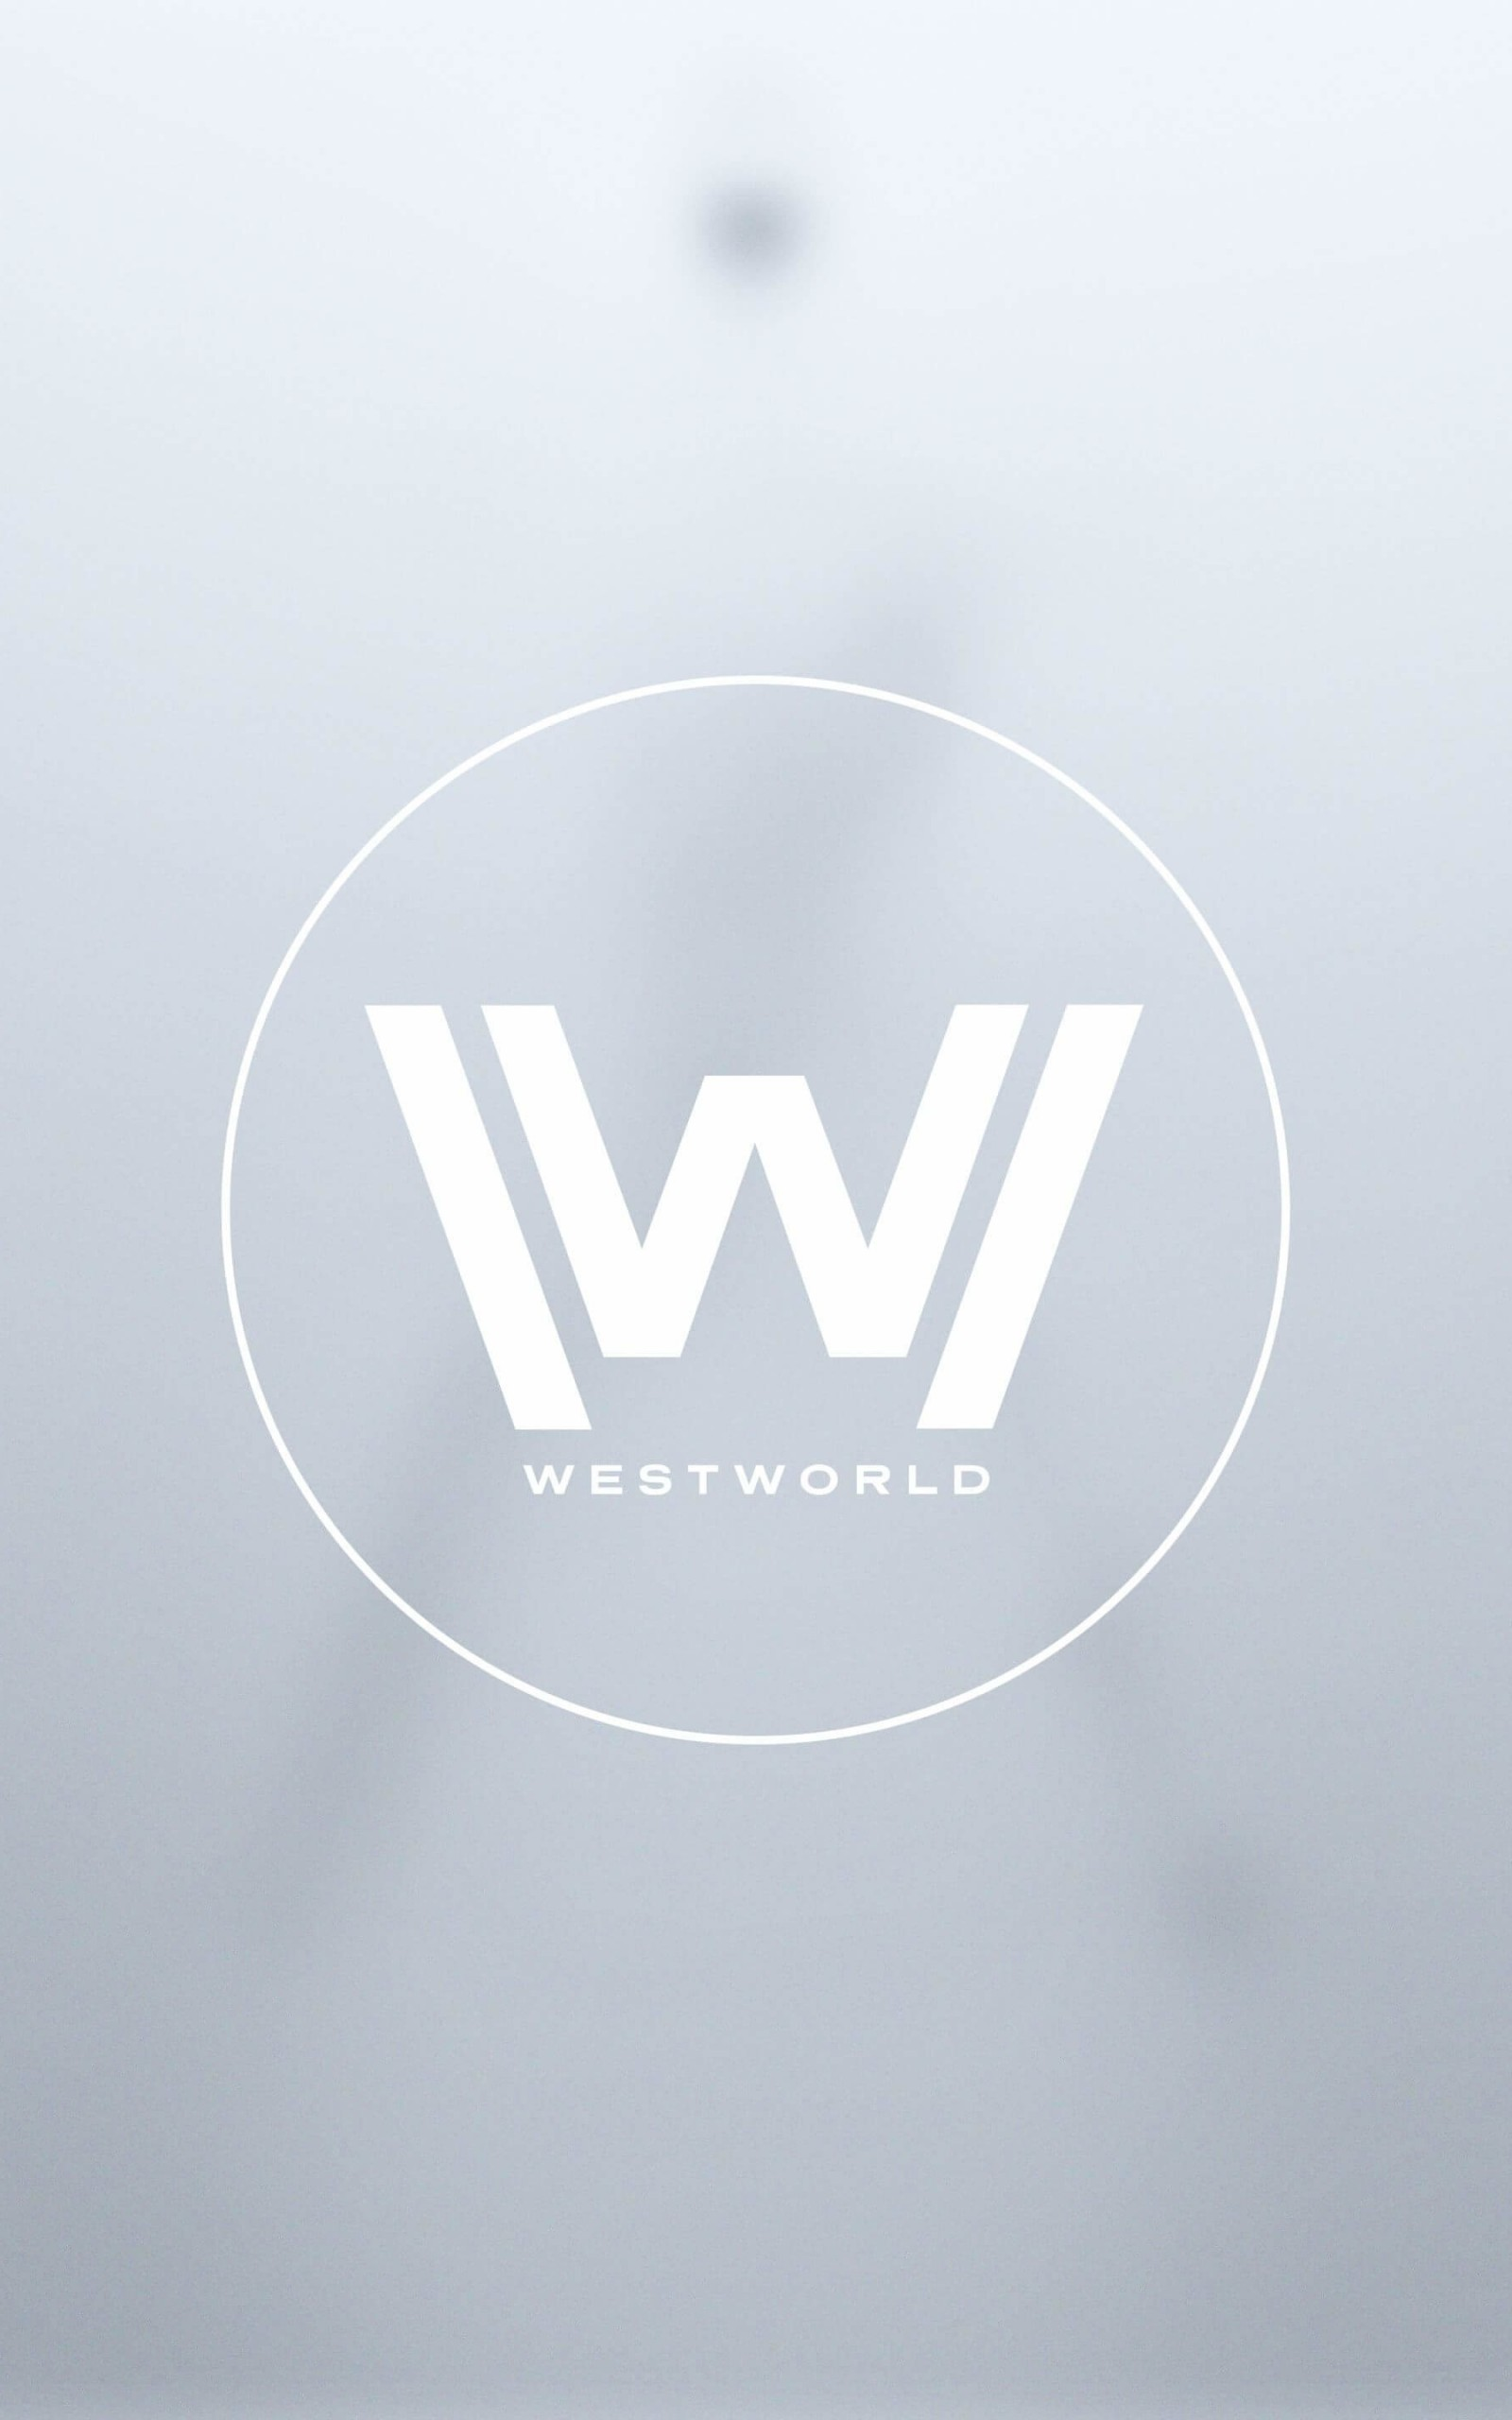 Westworld Logo Wallpaper for Amazon Kindle Fire HDX 8.9